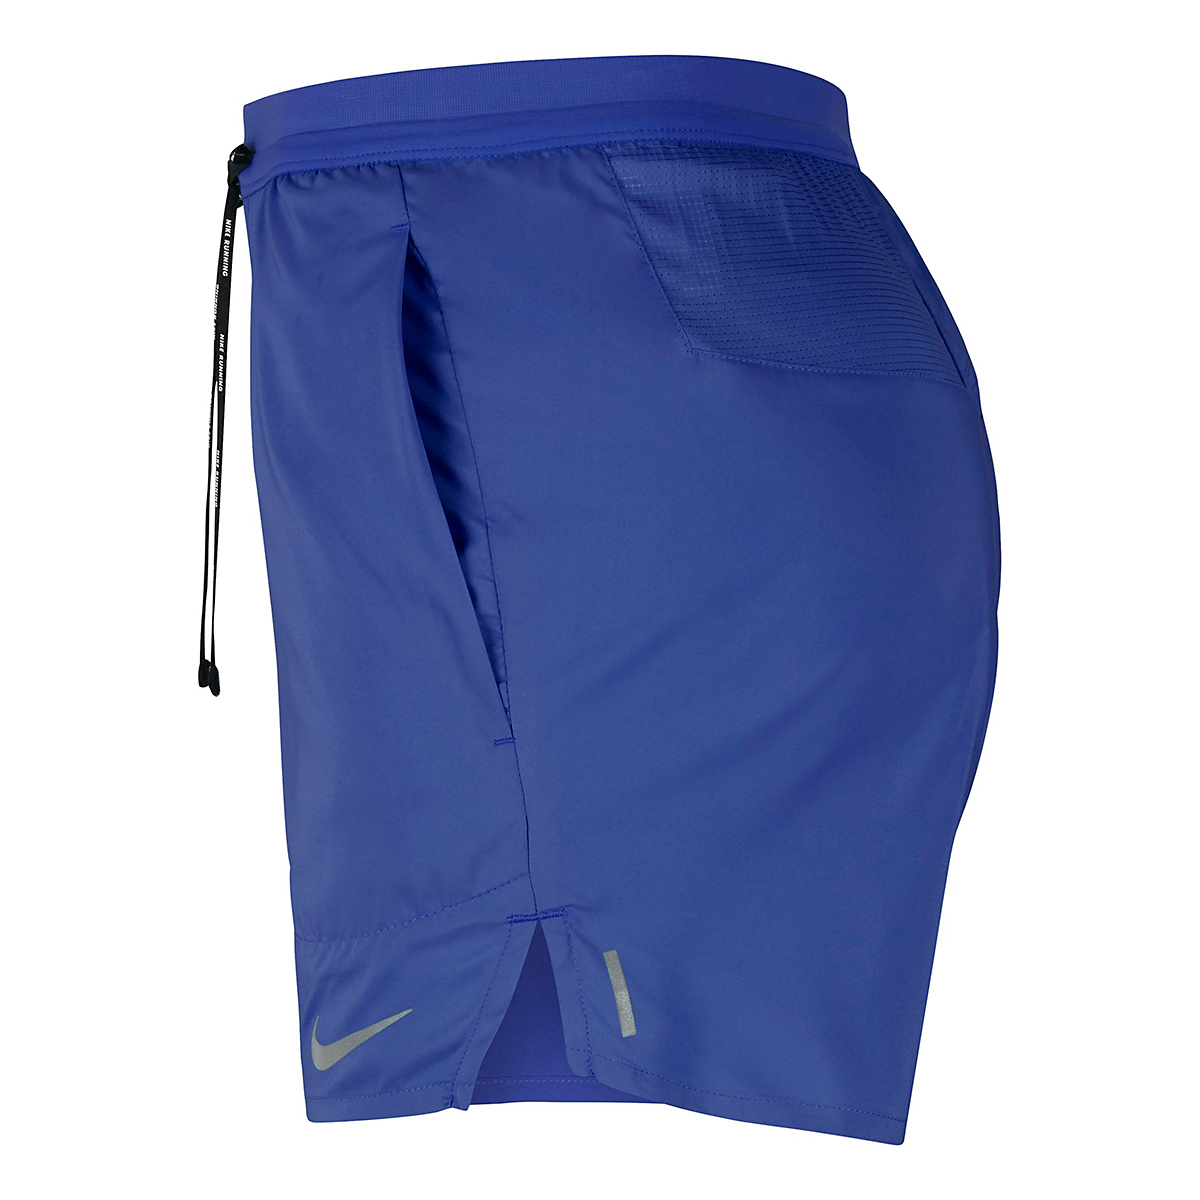 """Men's Nike Flex Stride 5"""" Brief Running Shorts - Color: Astronomy Blue - Size: S, Astronomy Blue, large, image 4"""